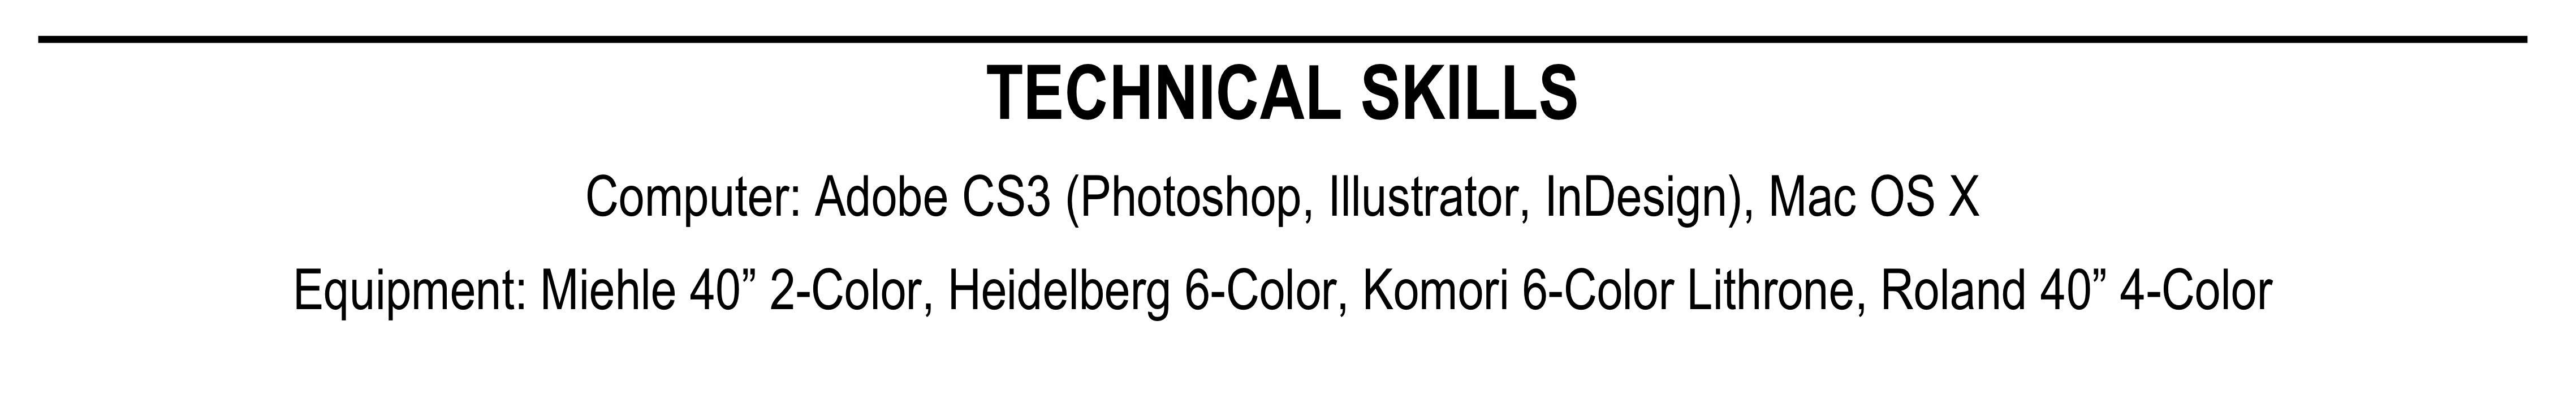 Technical skills section of a print shop resume